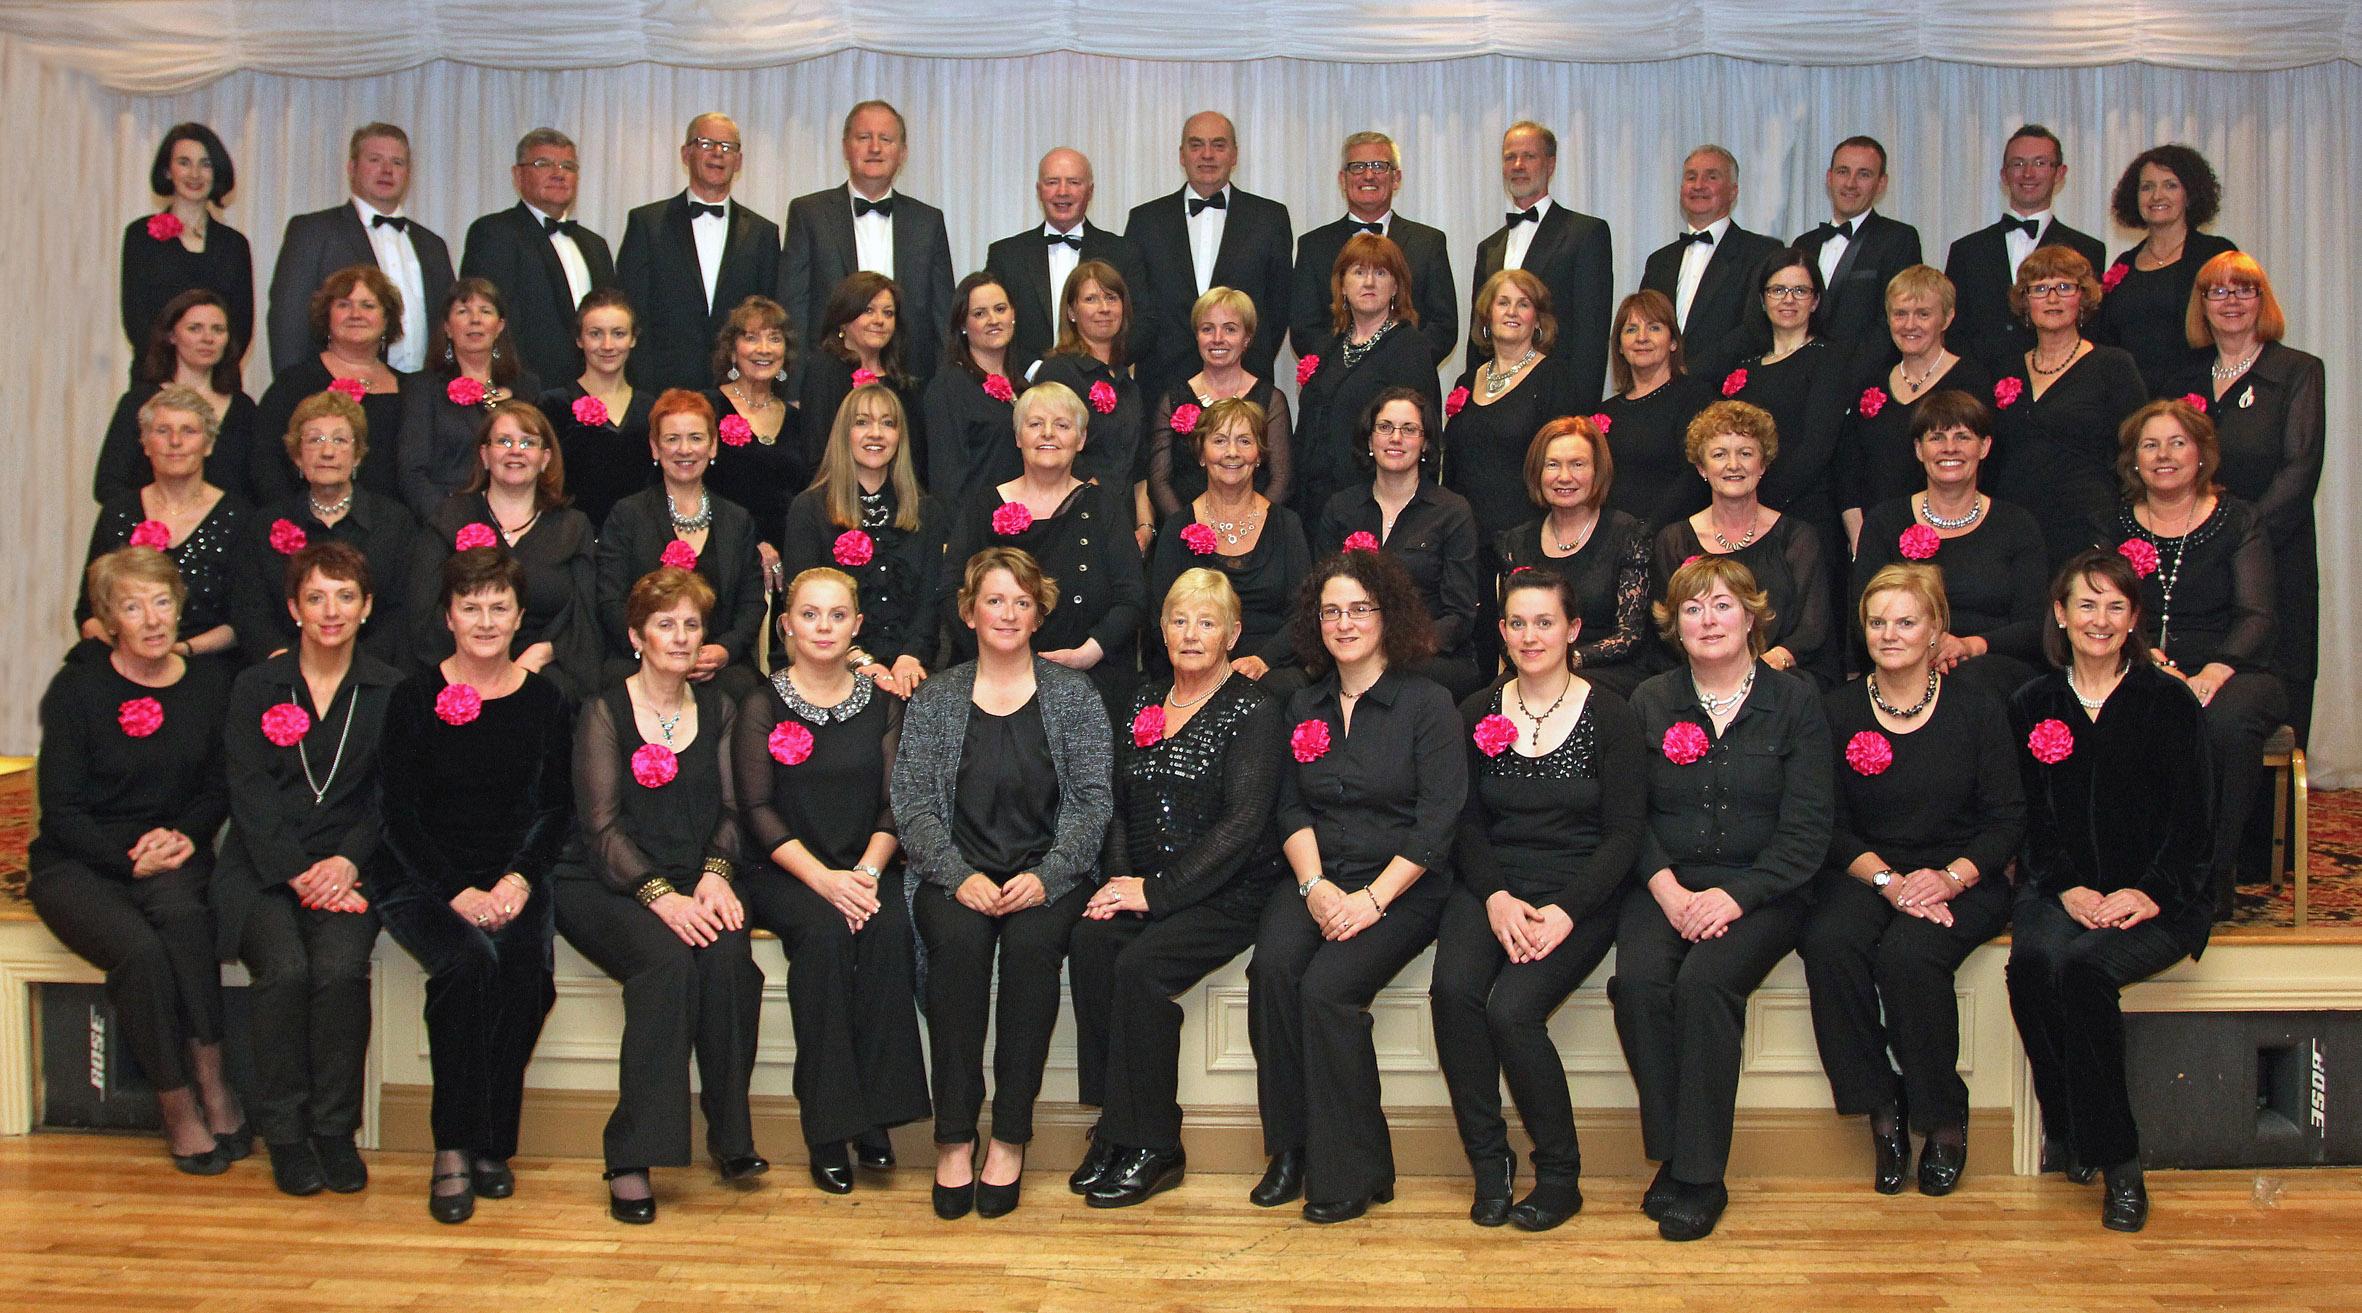 Cavan Singers Free Rehearsal Tuesday 6 October